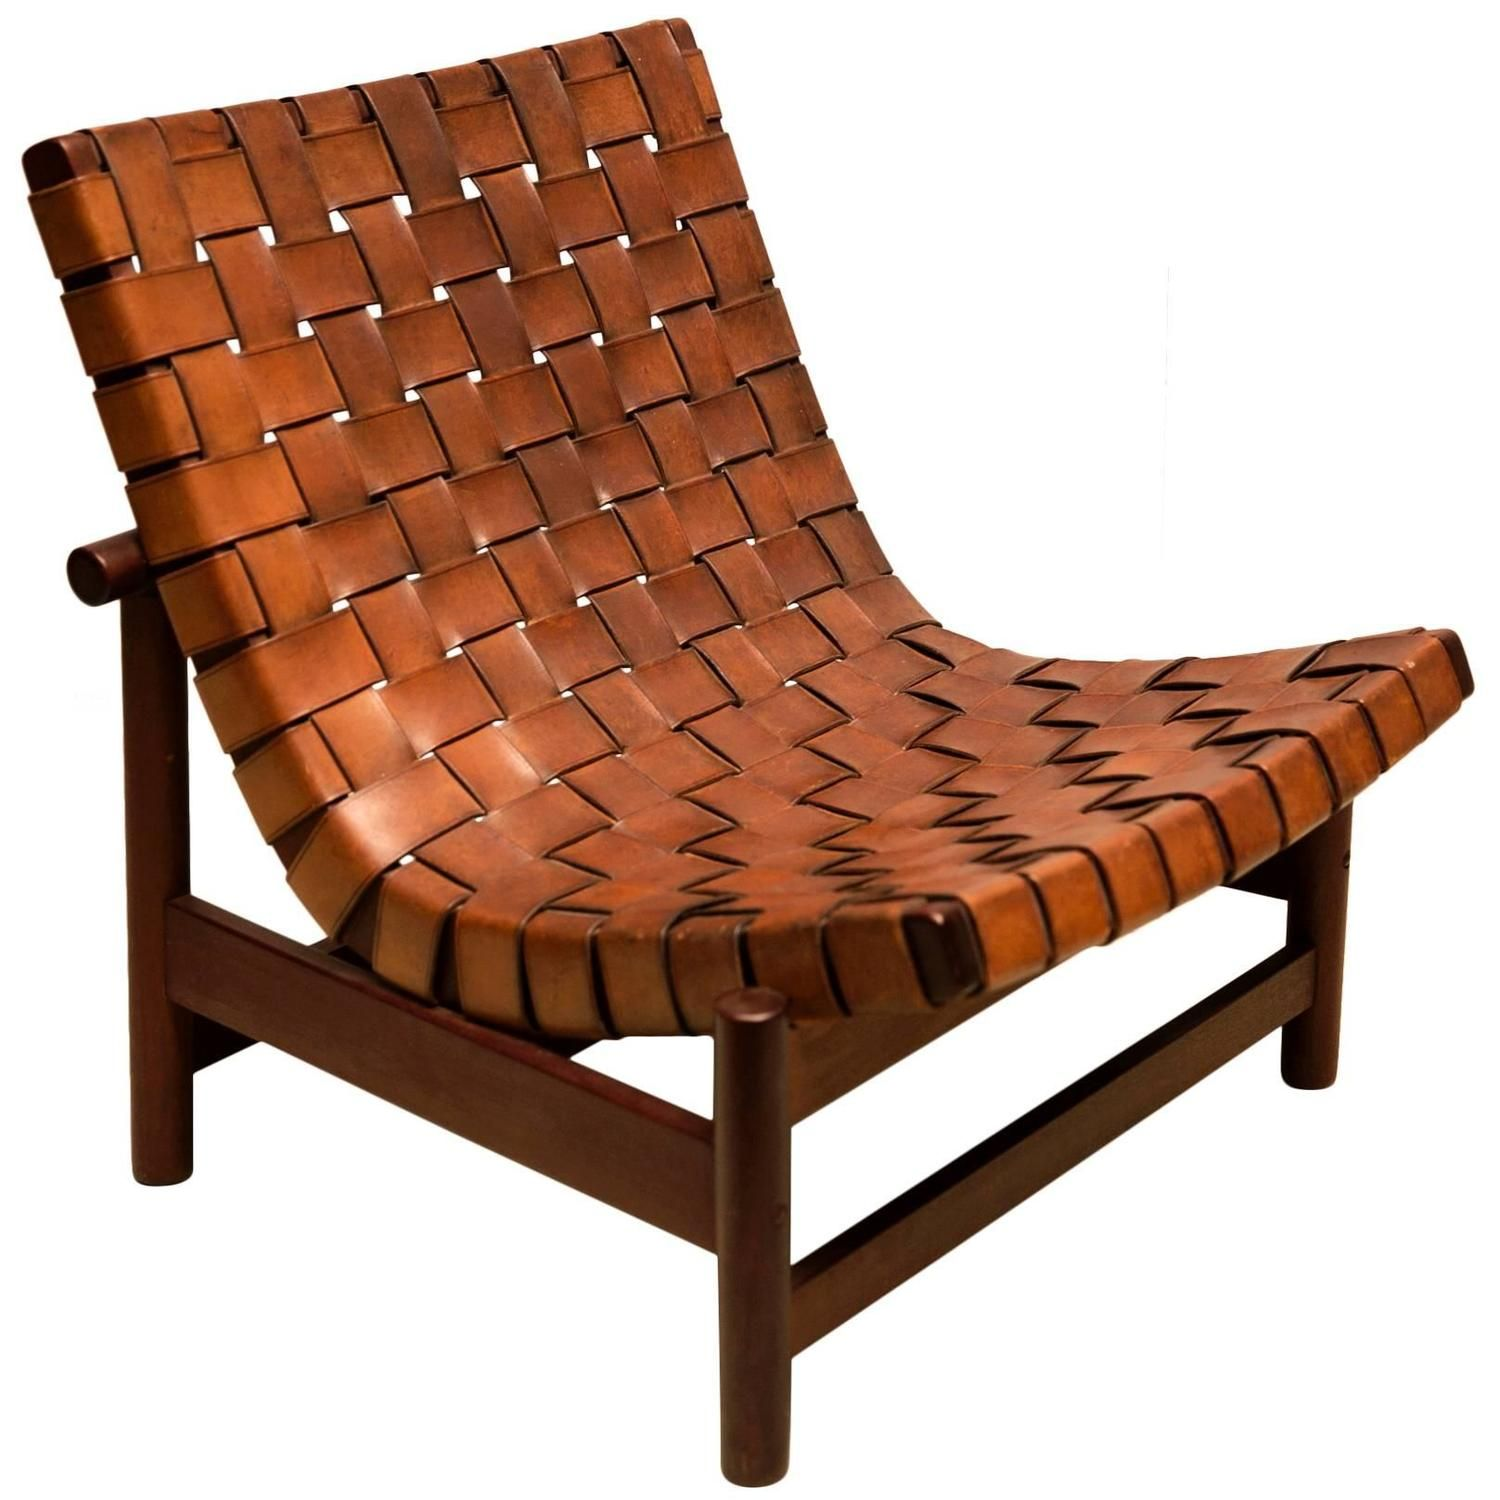 1950s Lounge Chair In Woven Saddle Leather And Cuban Mahogany By Dujo, Cuba  | From A Unique Collection Of Antique And Modern Lounge Chairs At ...